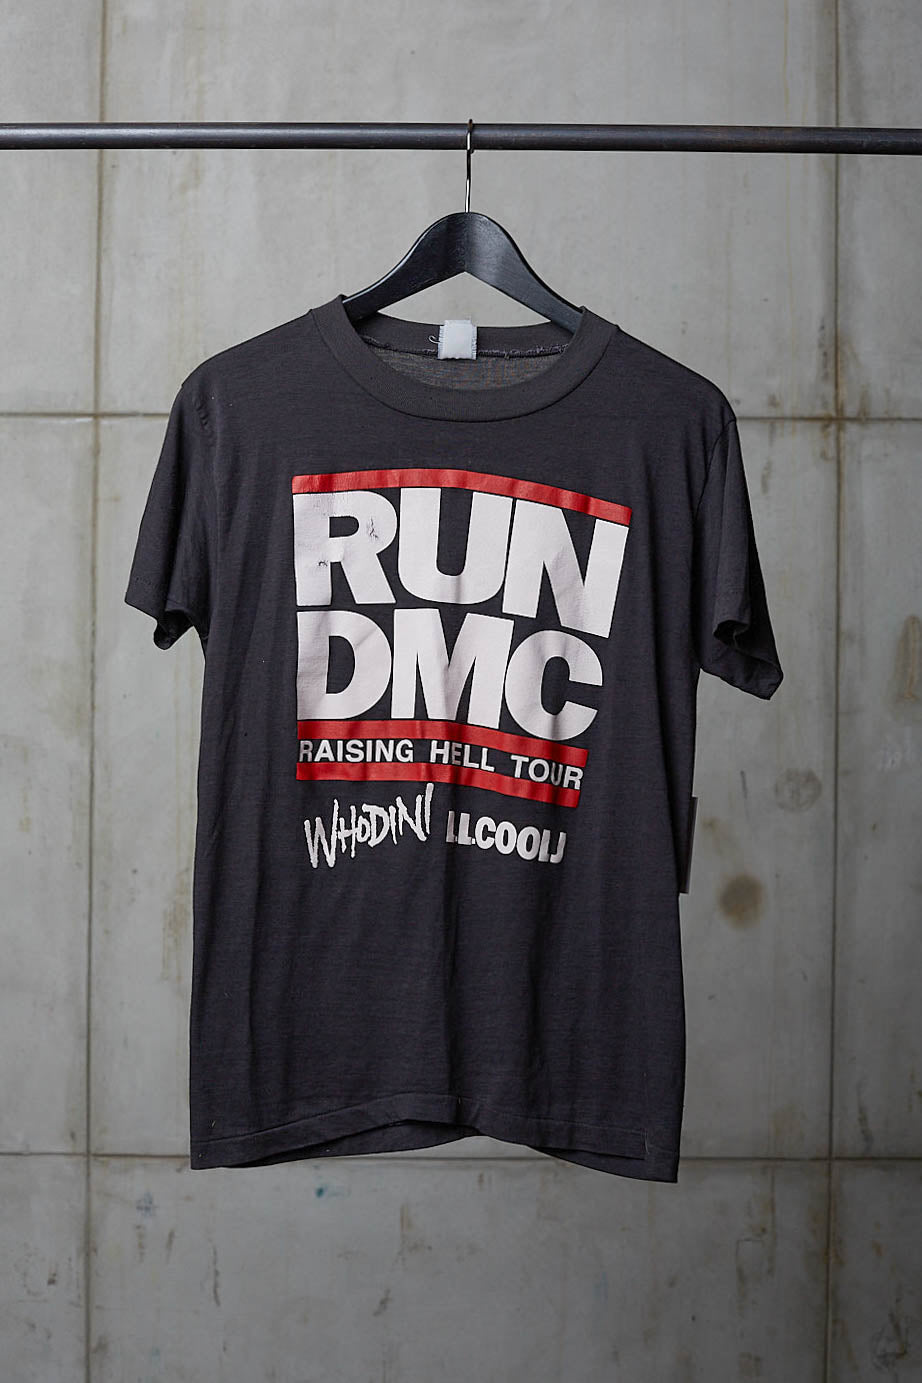 RUN DMC RAISING HELL TOUR TEE